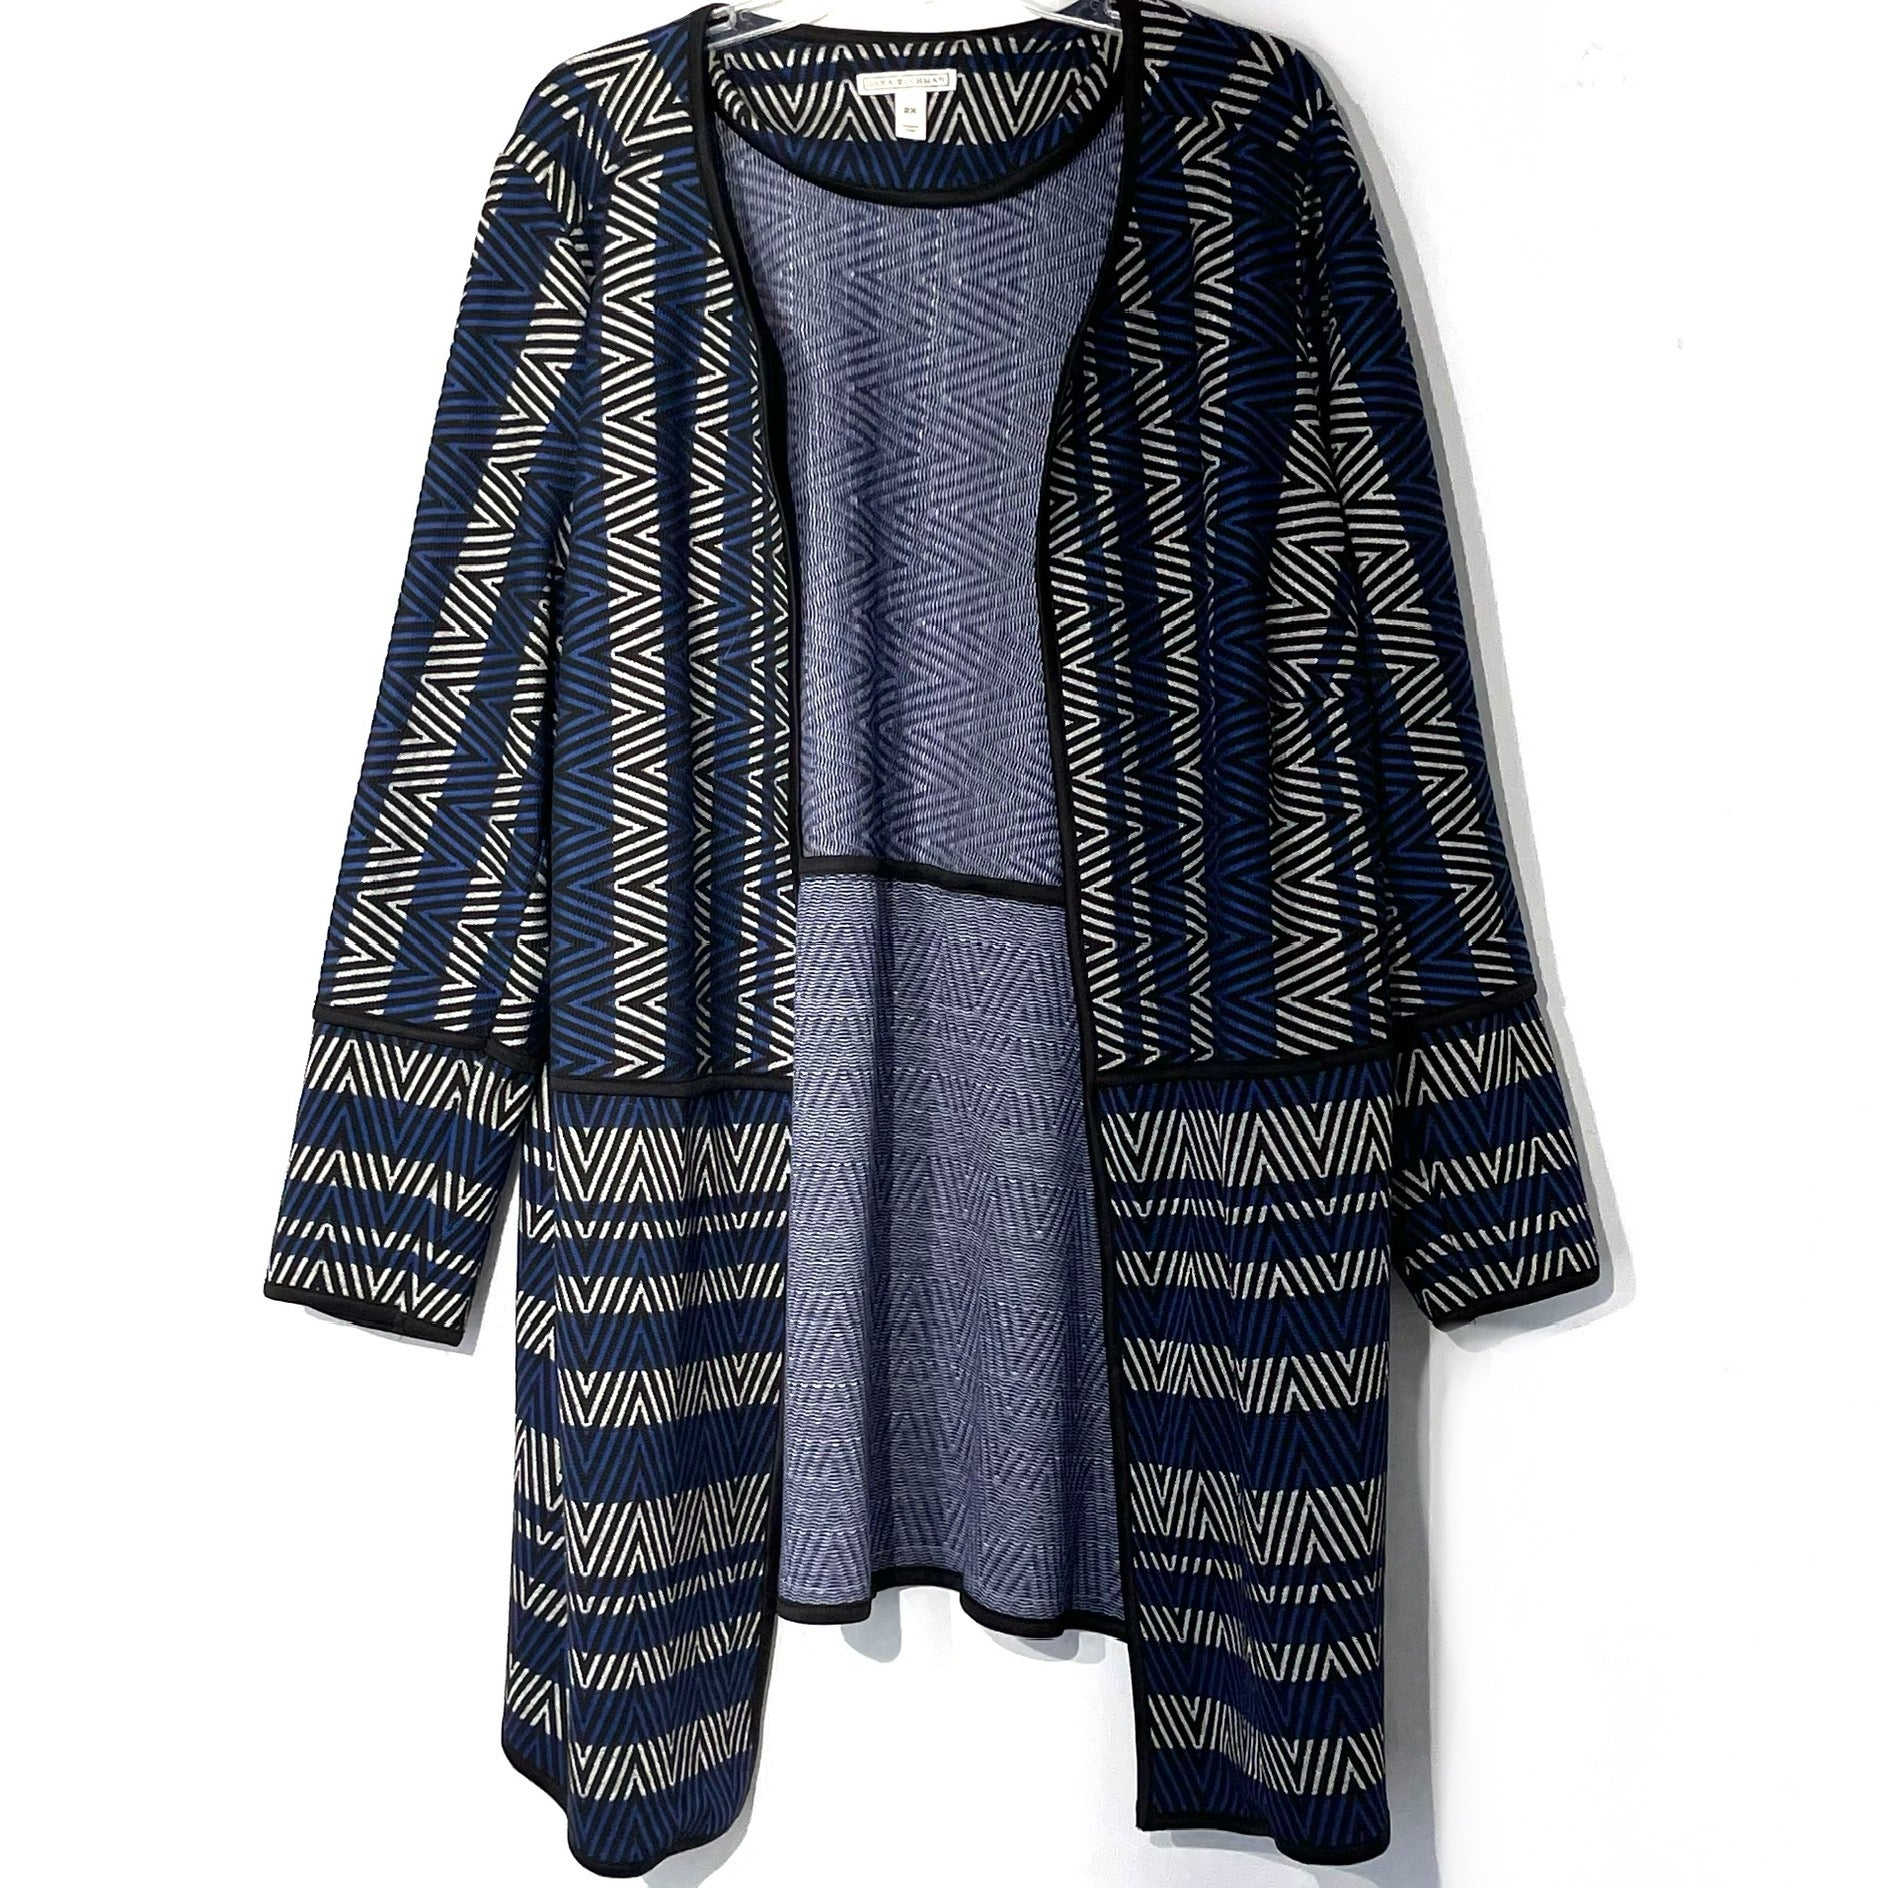 Primary Photo - BRAND: DANA BUCHMAN <BR>STYLE: SWEATER CARDIGAN LIGHTWEIGHT <BR>COLOR: GEOMETRIC <BR>SIZE: 2X <BR>SKU: 262-26211-143547